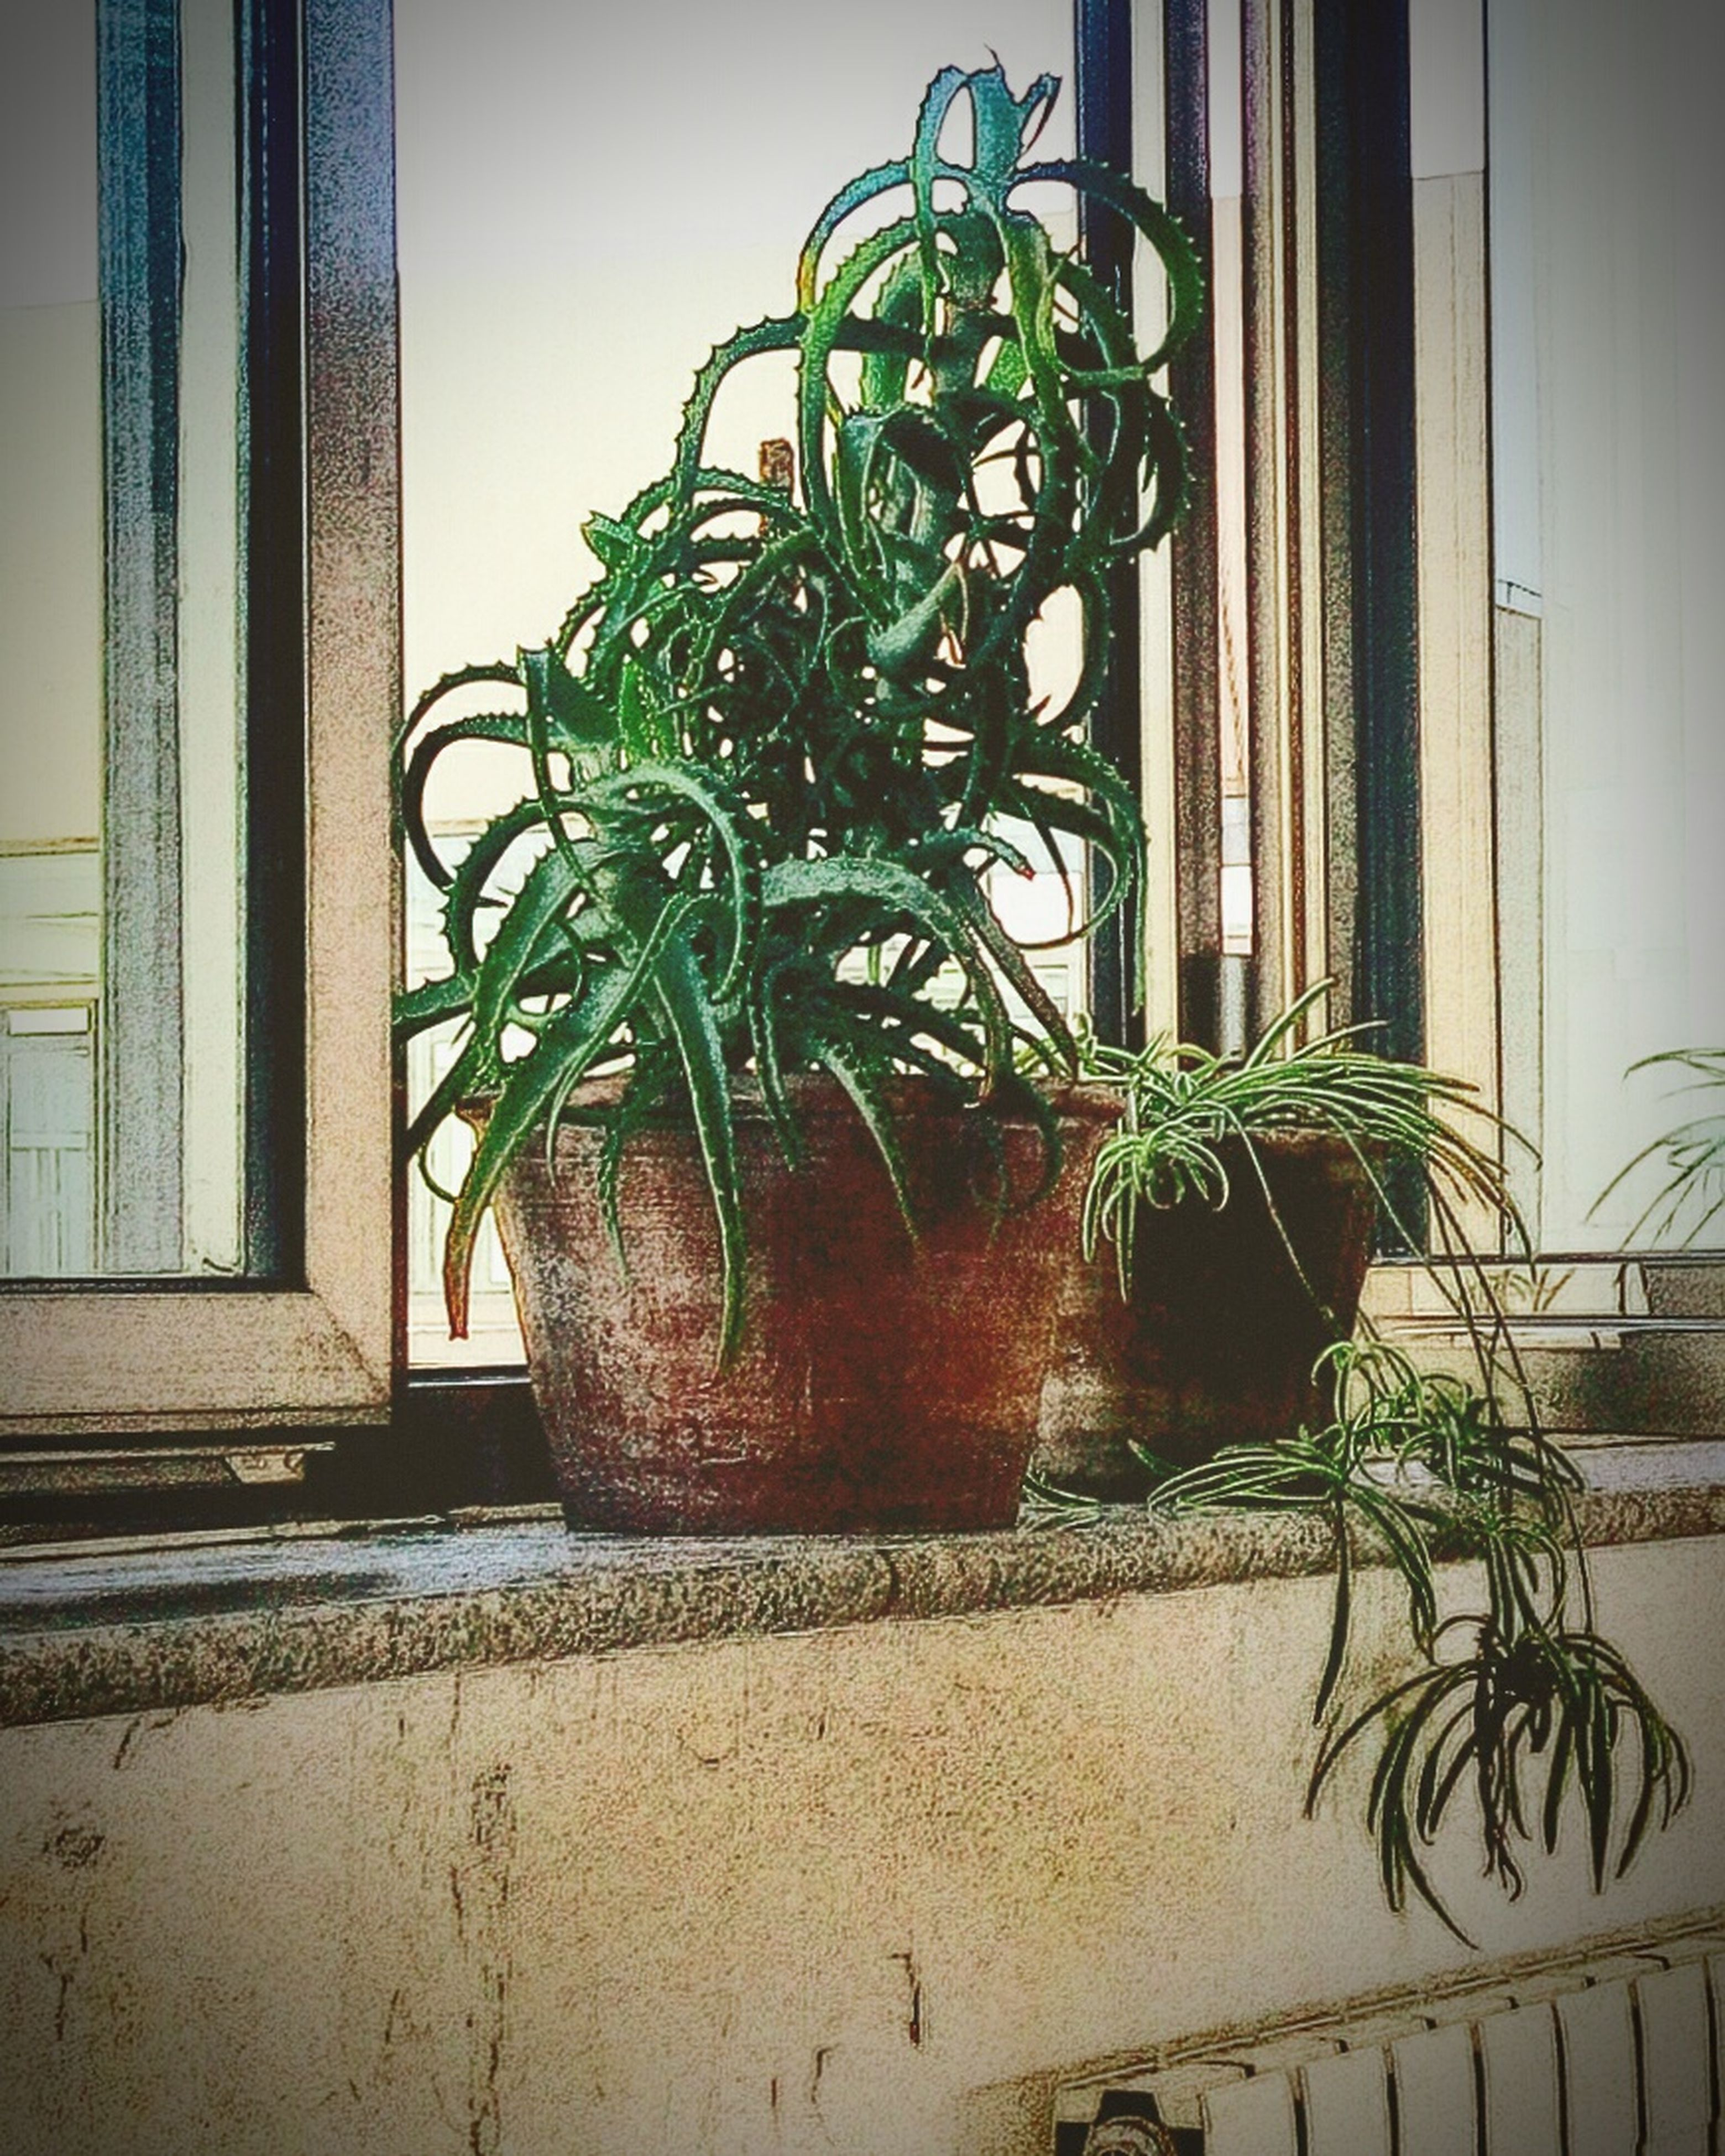 potted plant, plant, built structure, window, architecture, indoors, growth, house, wall - building feature, leaf, green color, building exterior, home interior, wall, flower pot, pot plant, window sill, sunlight, door, no people